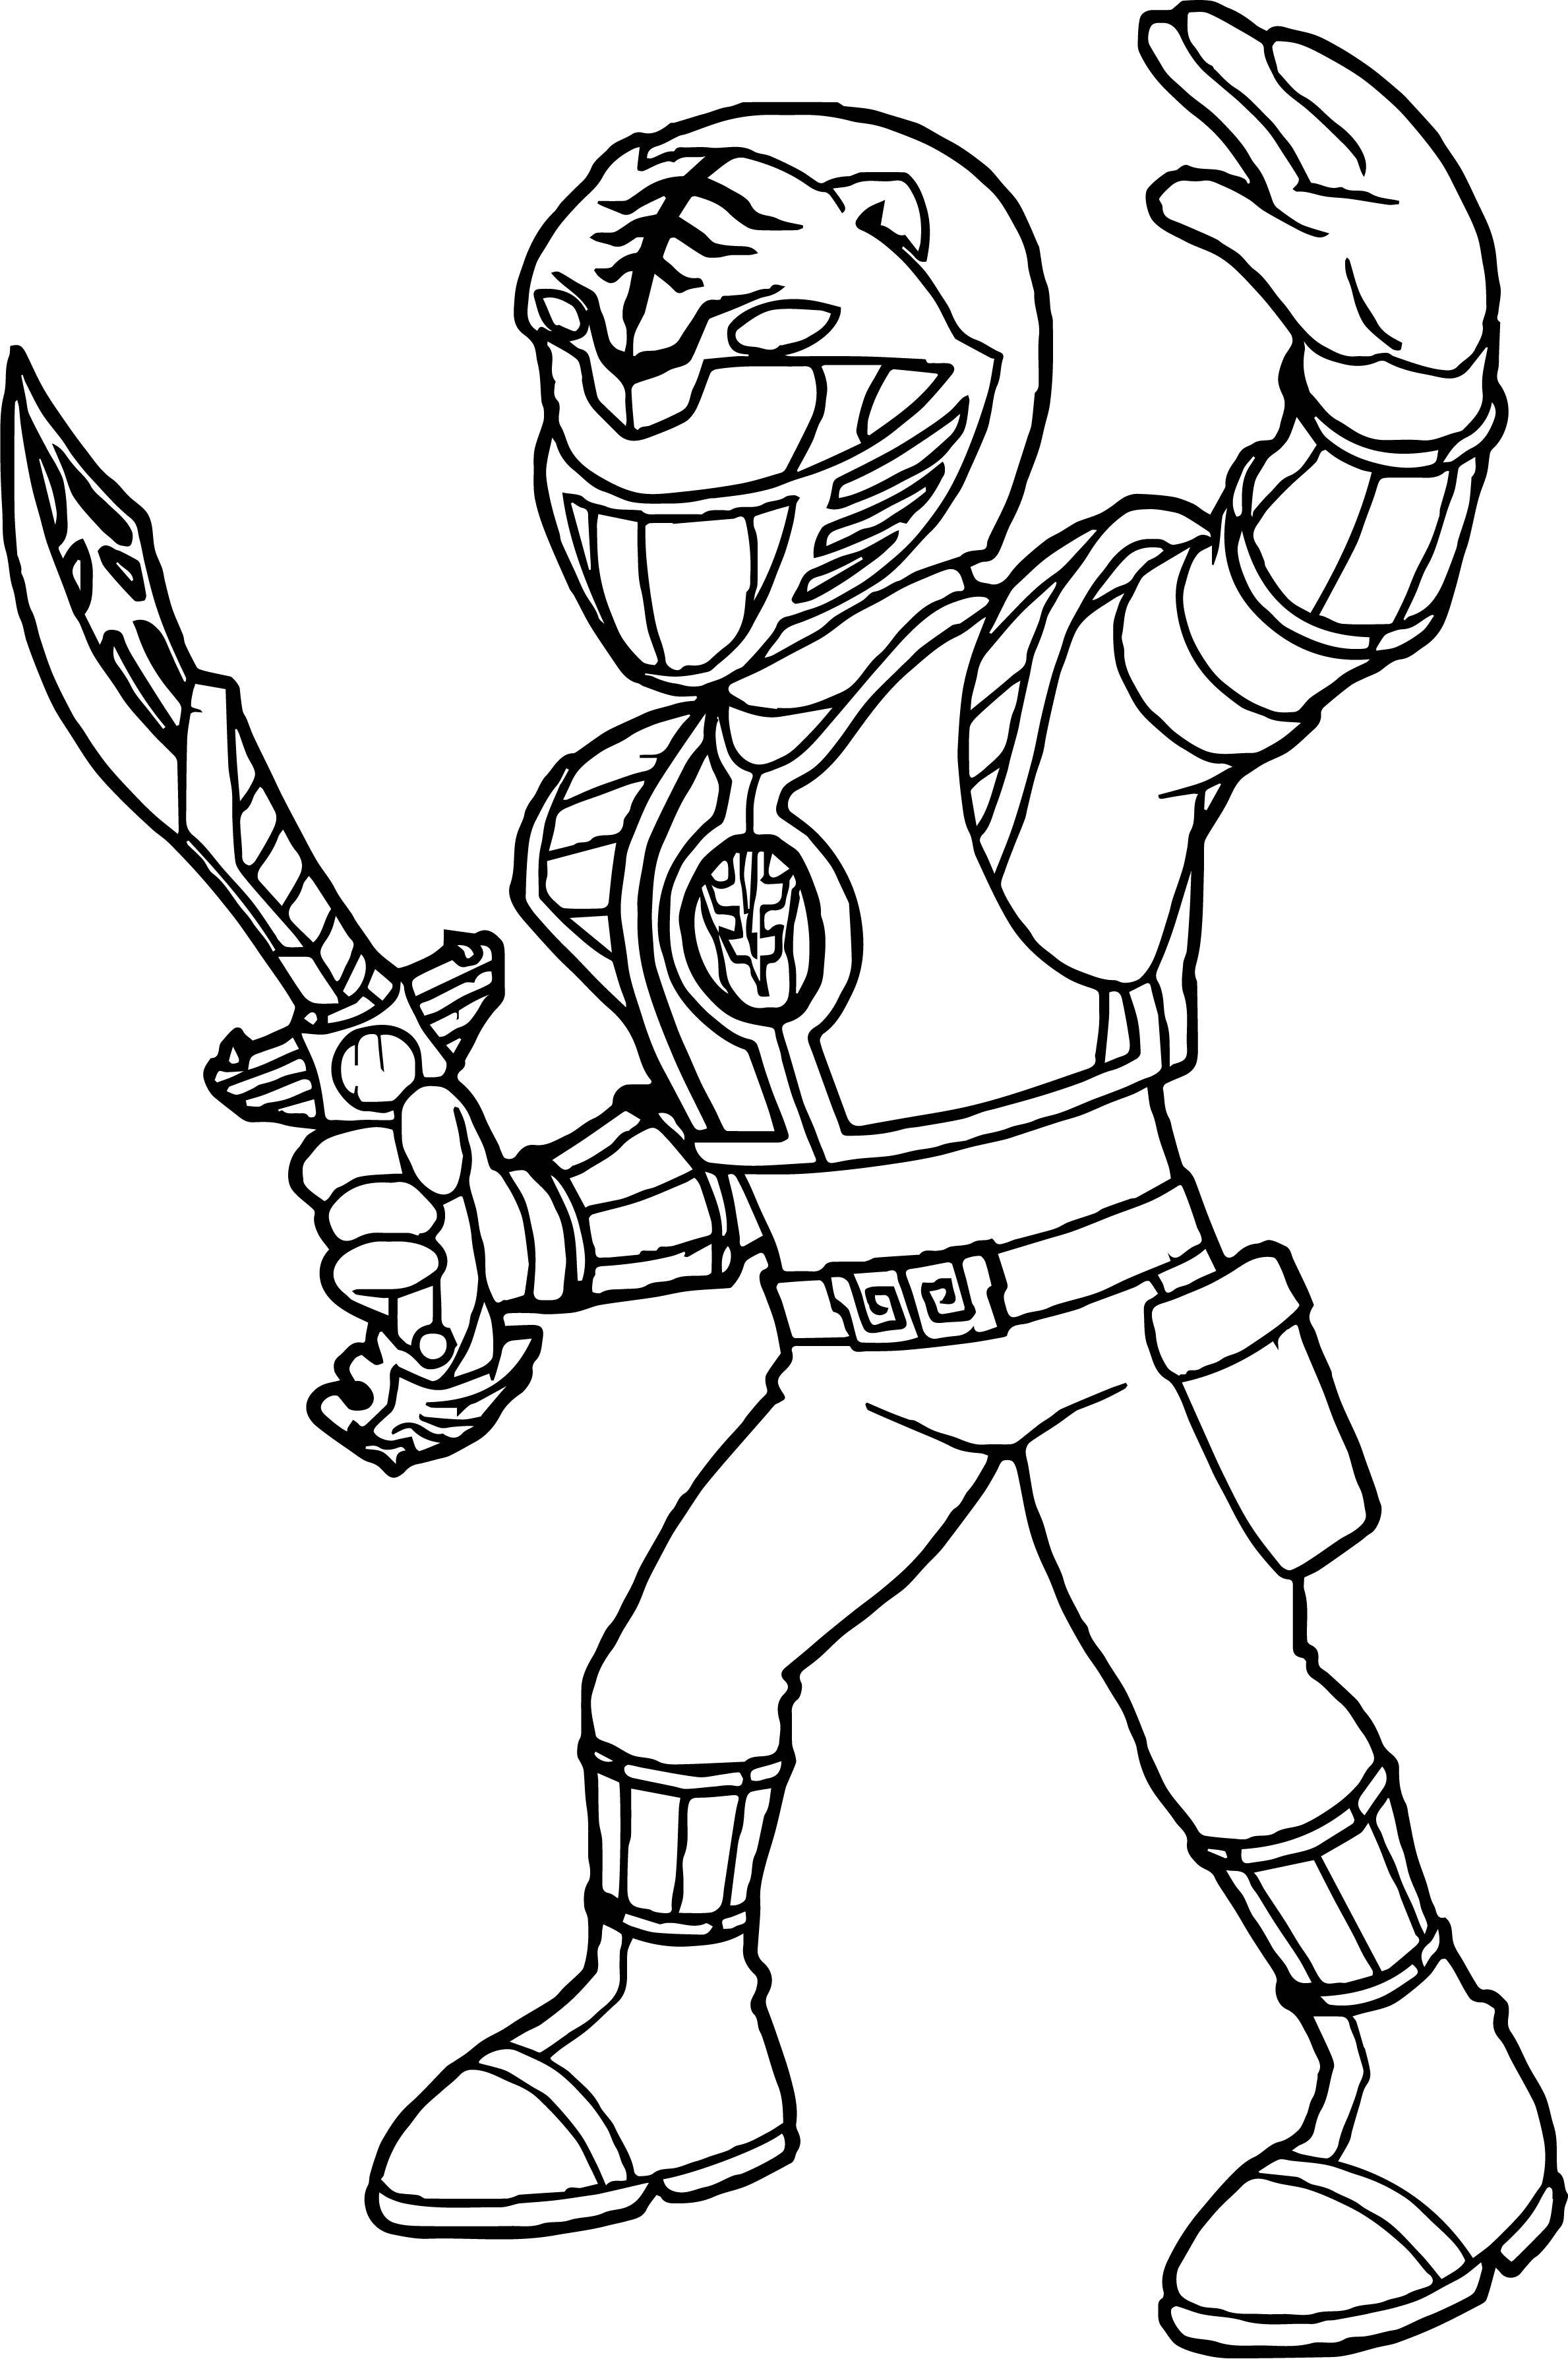 Top Power Rangers Coloring Pages For Your Little Ones   Power ...